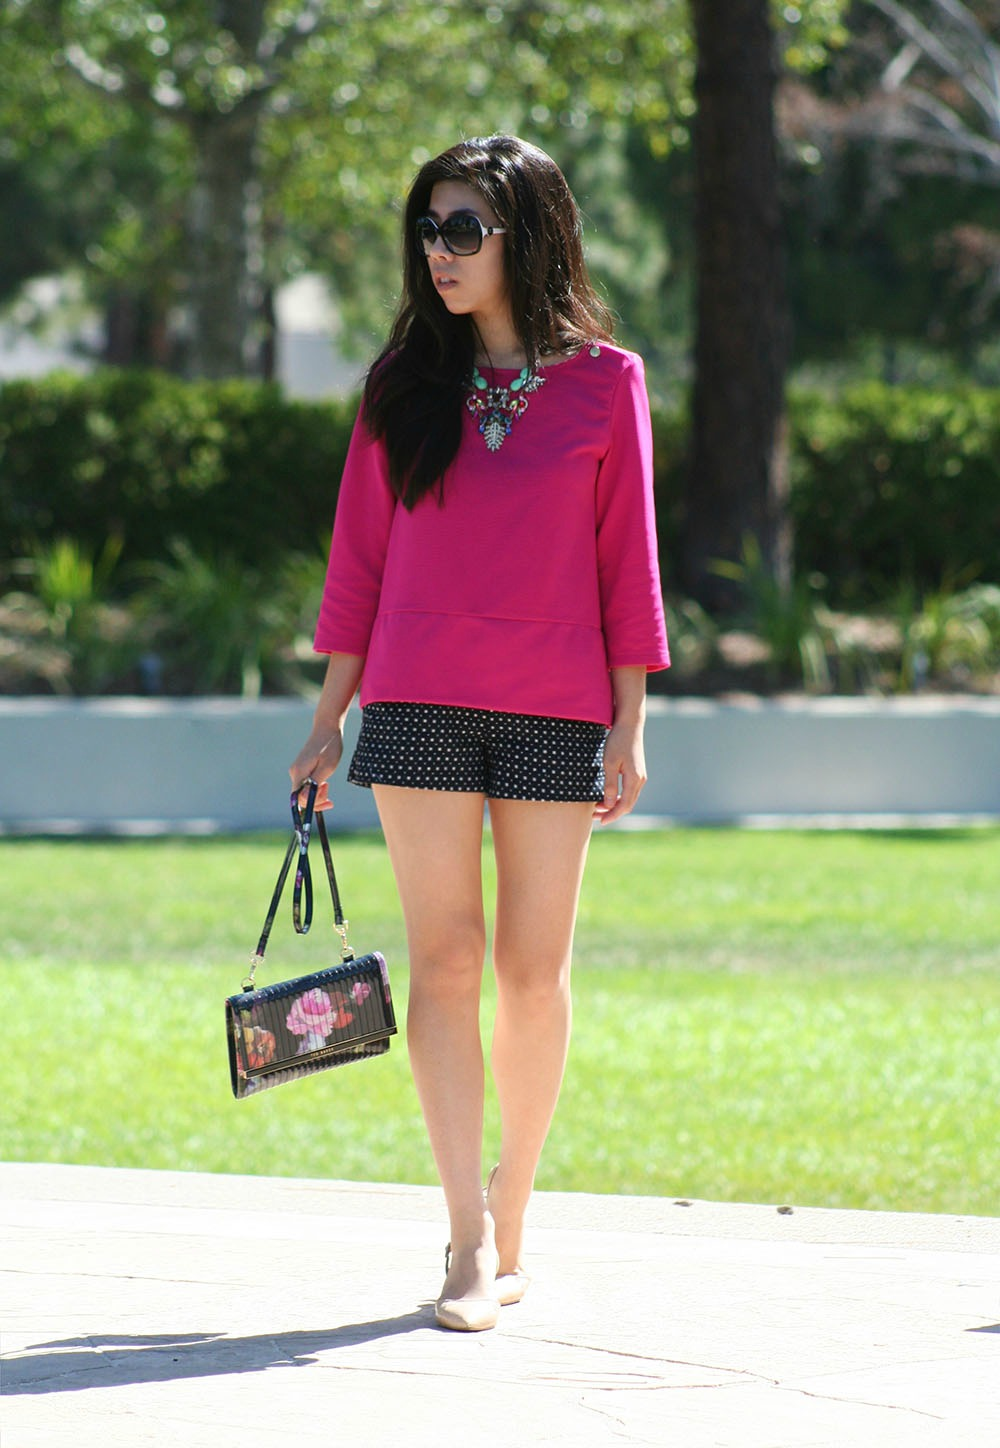 Adrienne Nguyen_Invictus_CHeap and Chic Fashion_Affordable Style